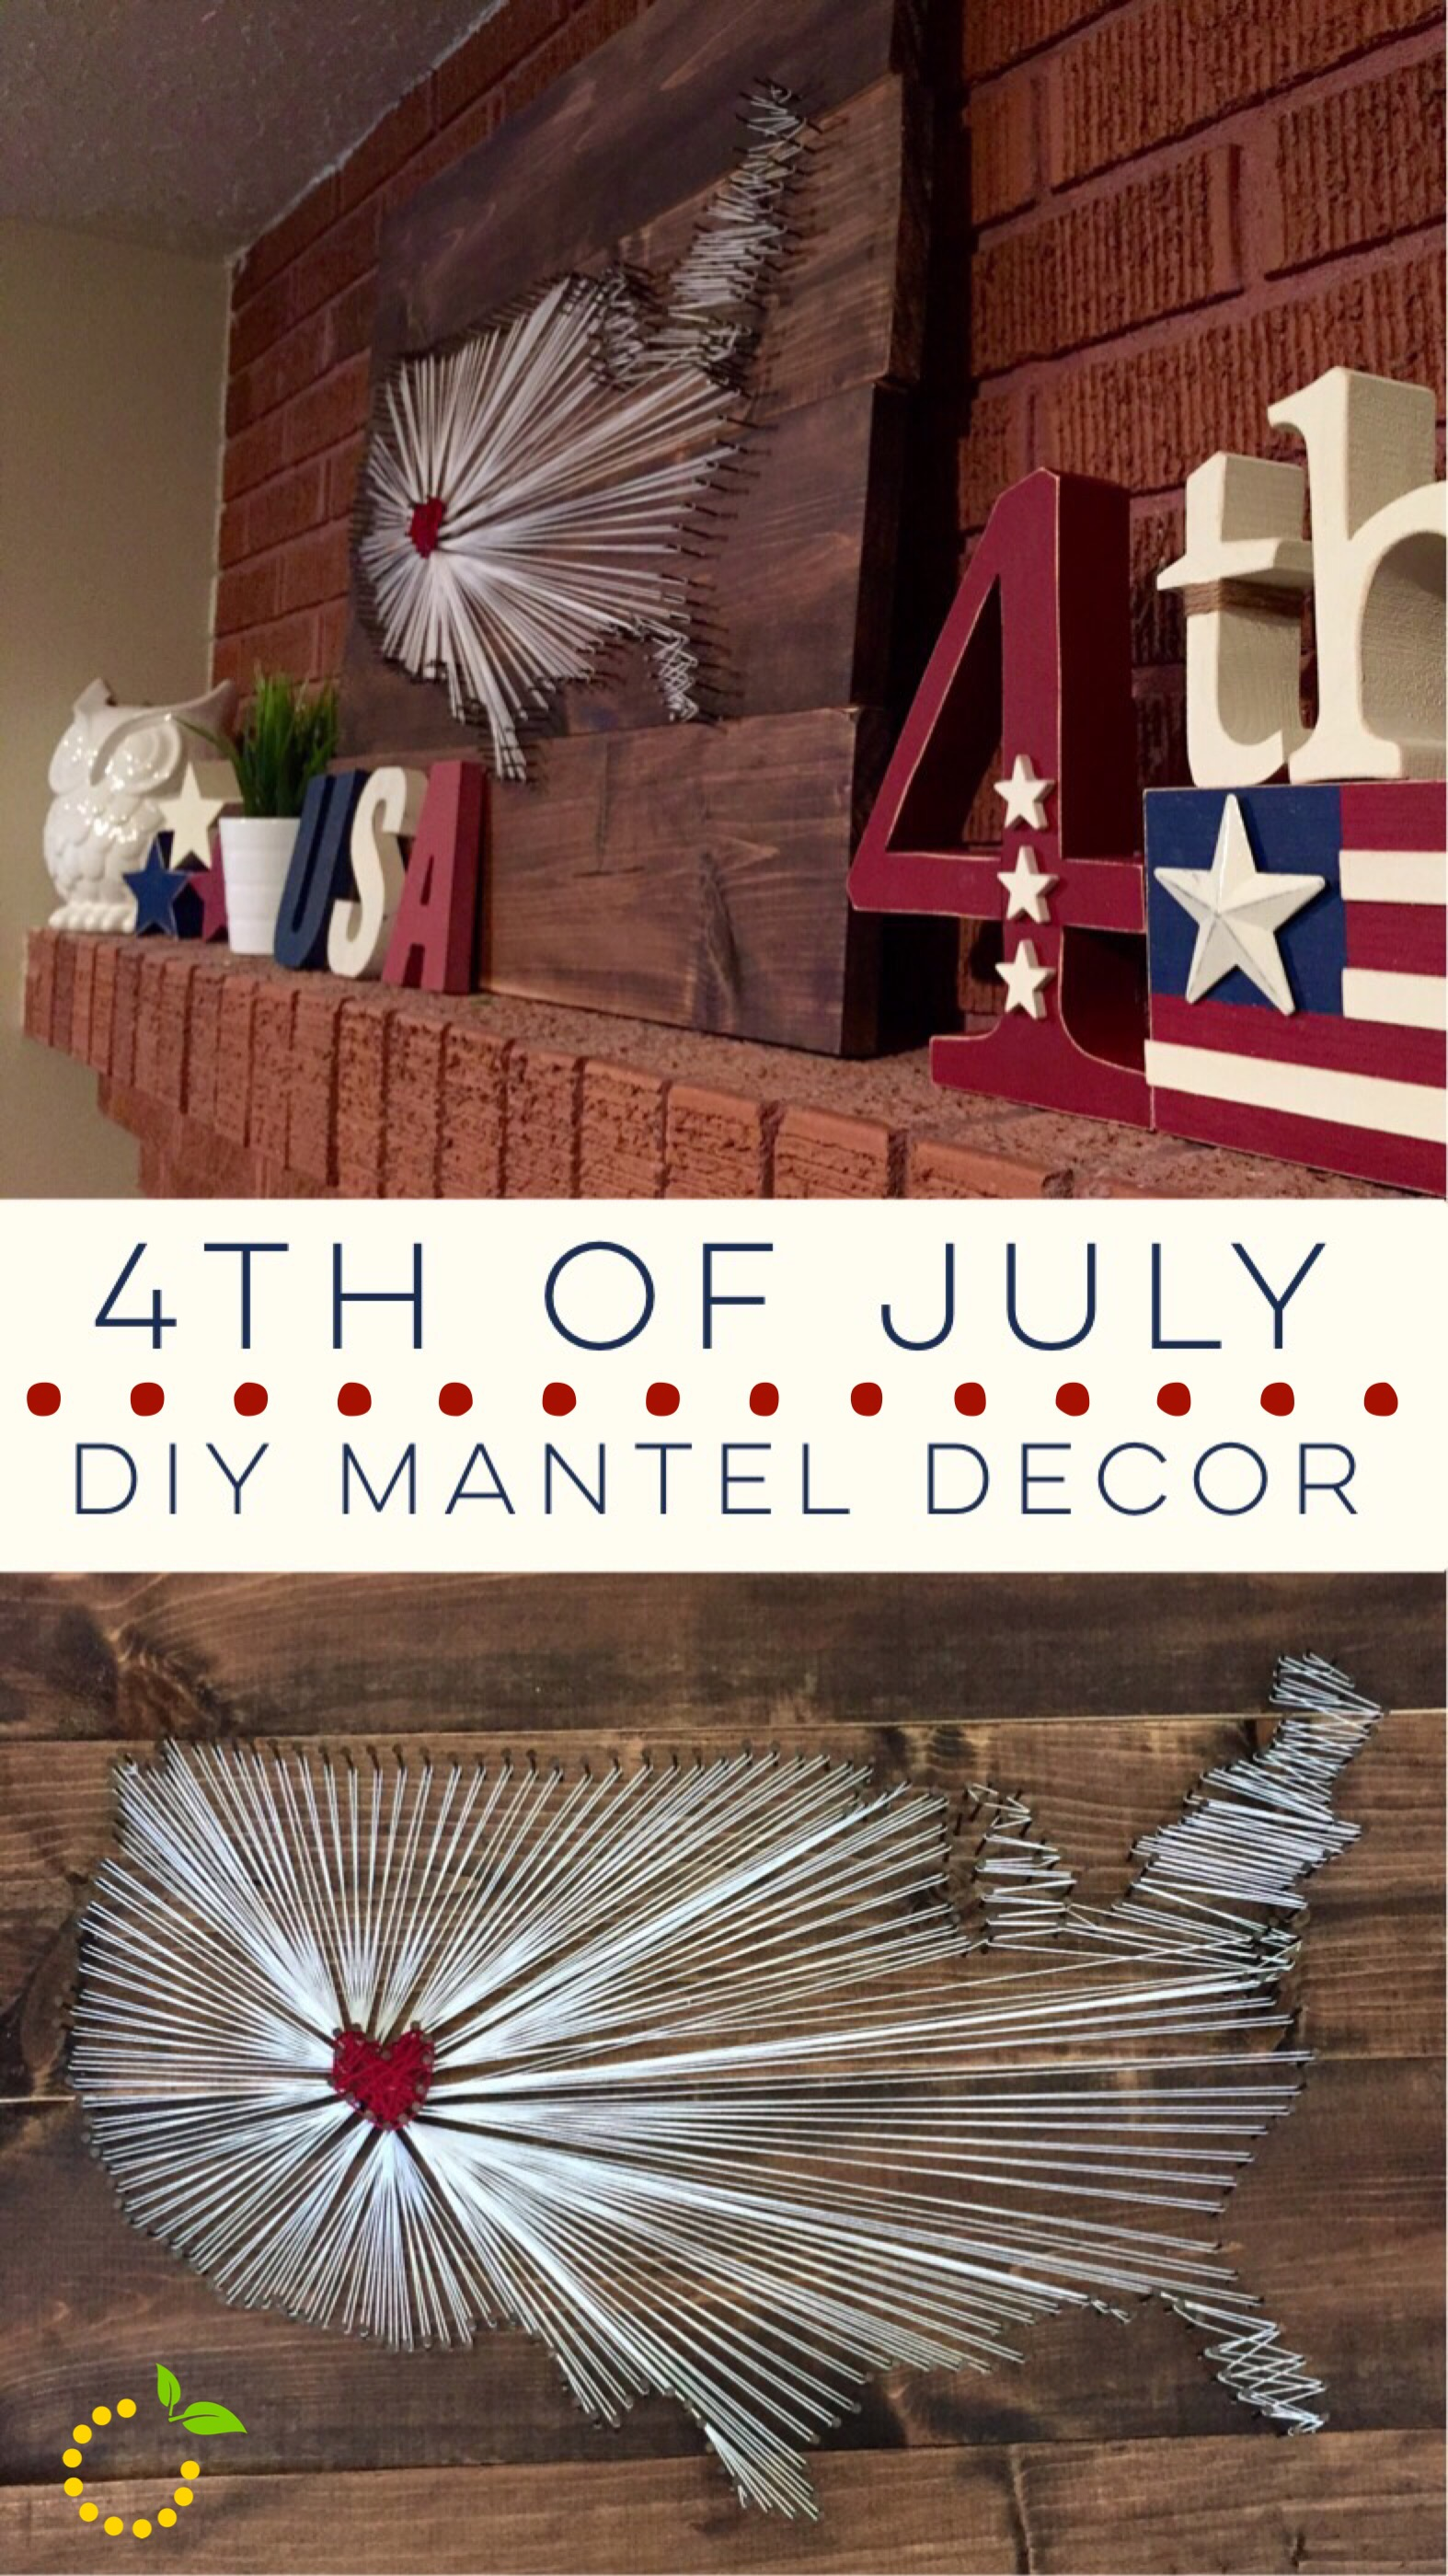 Mantle Decor 4th of July sweetlemonmade.com